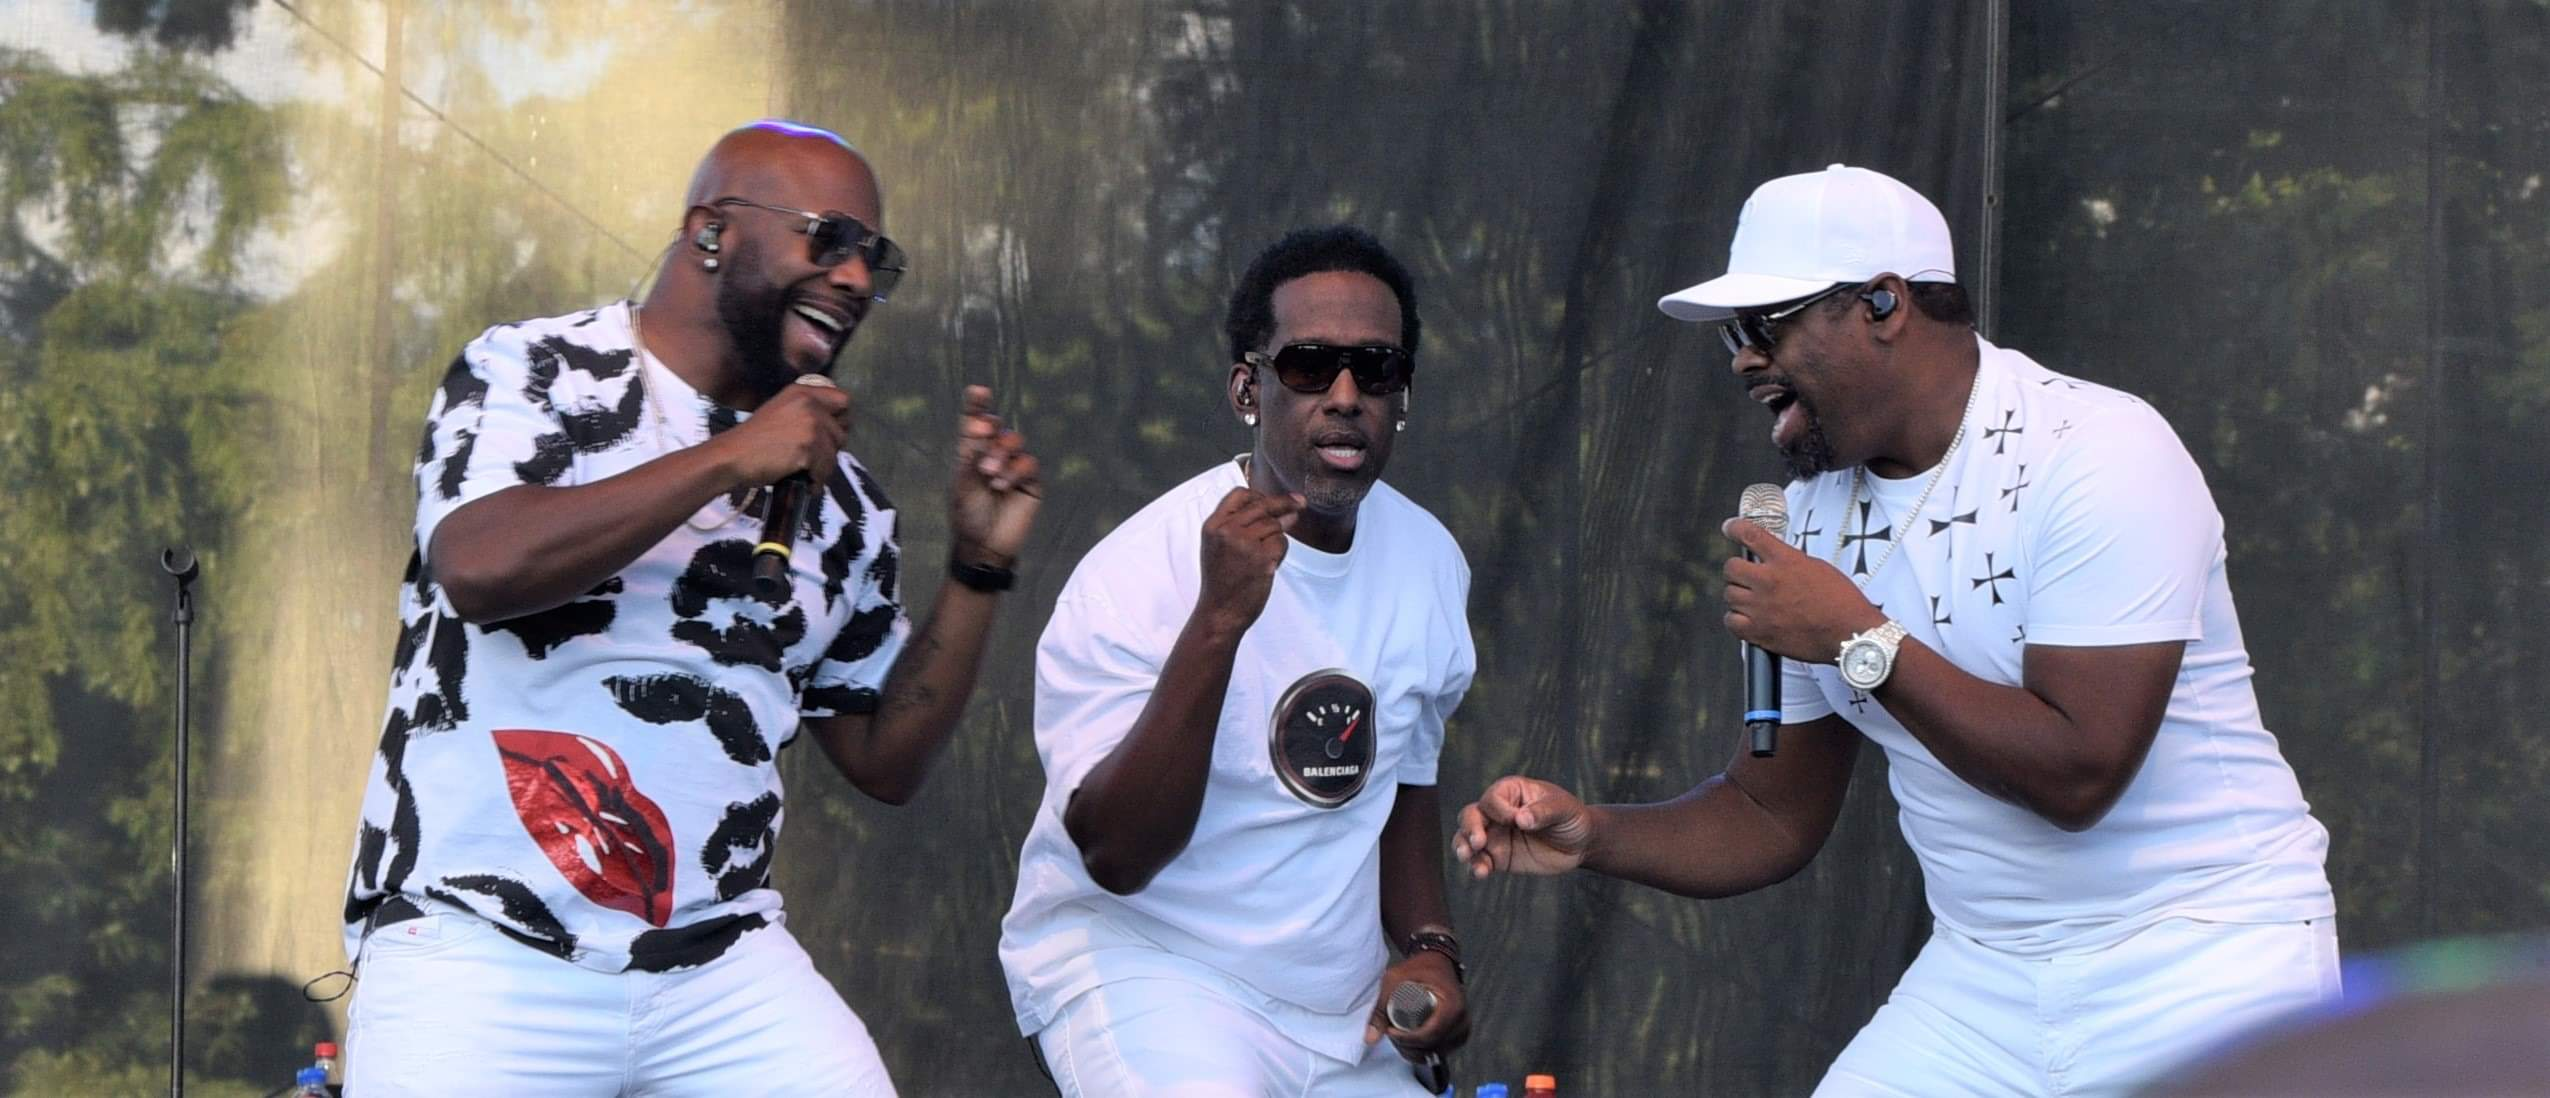 BOYZ TO MEN at Indiana State Fair | A M P S